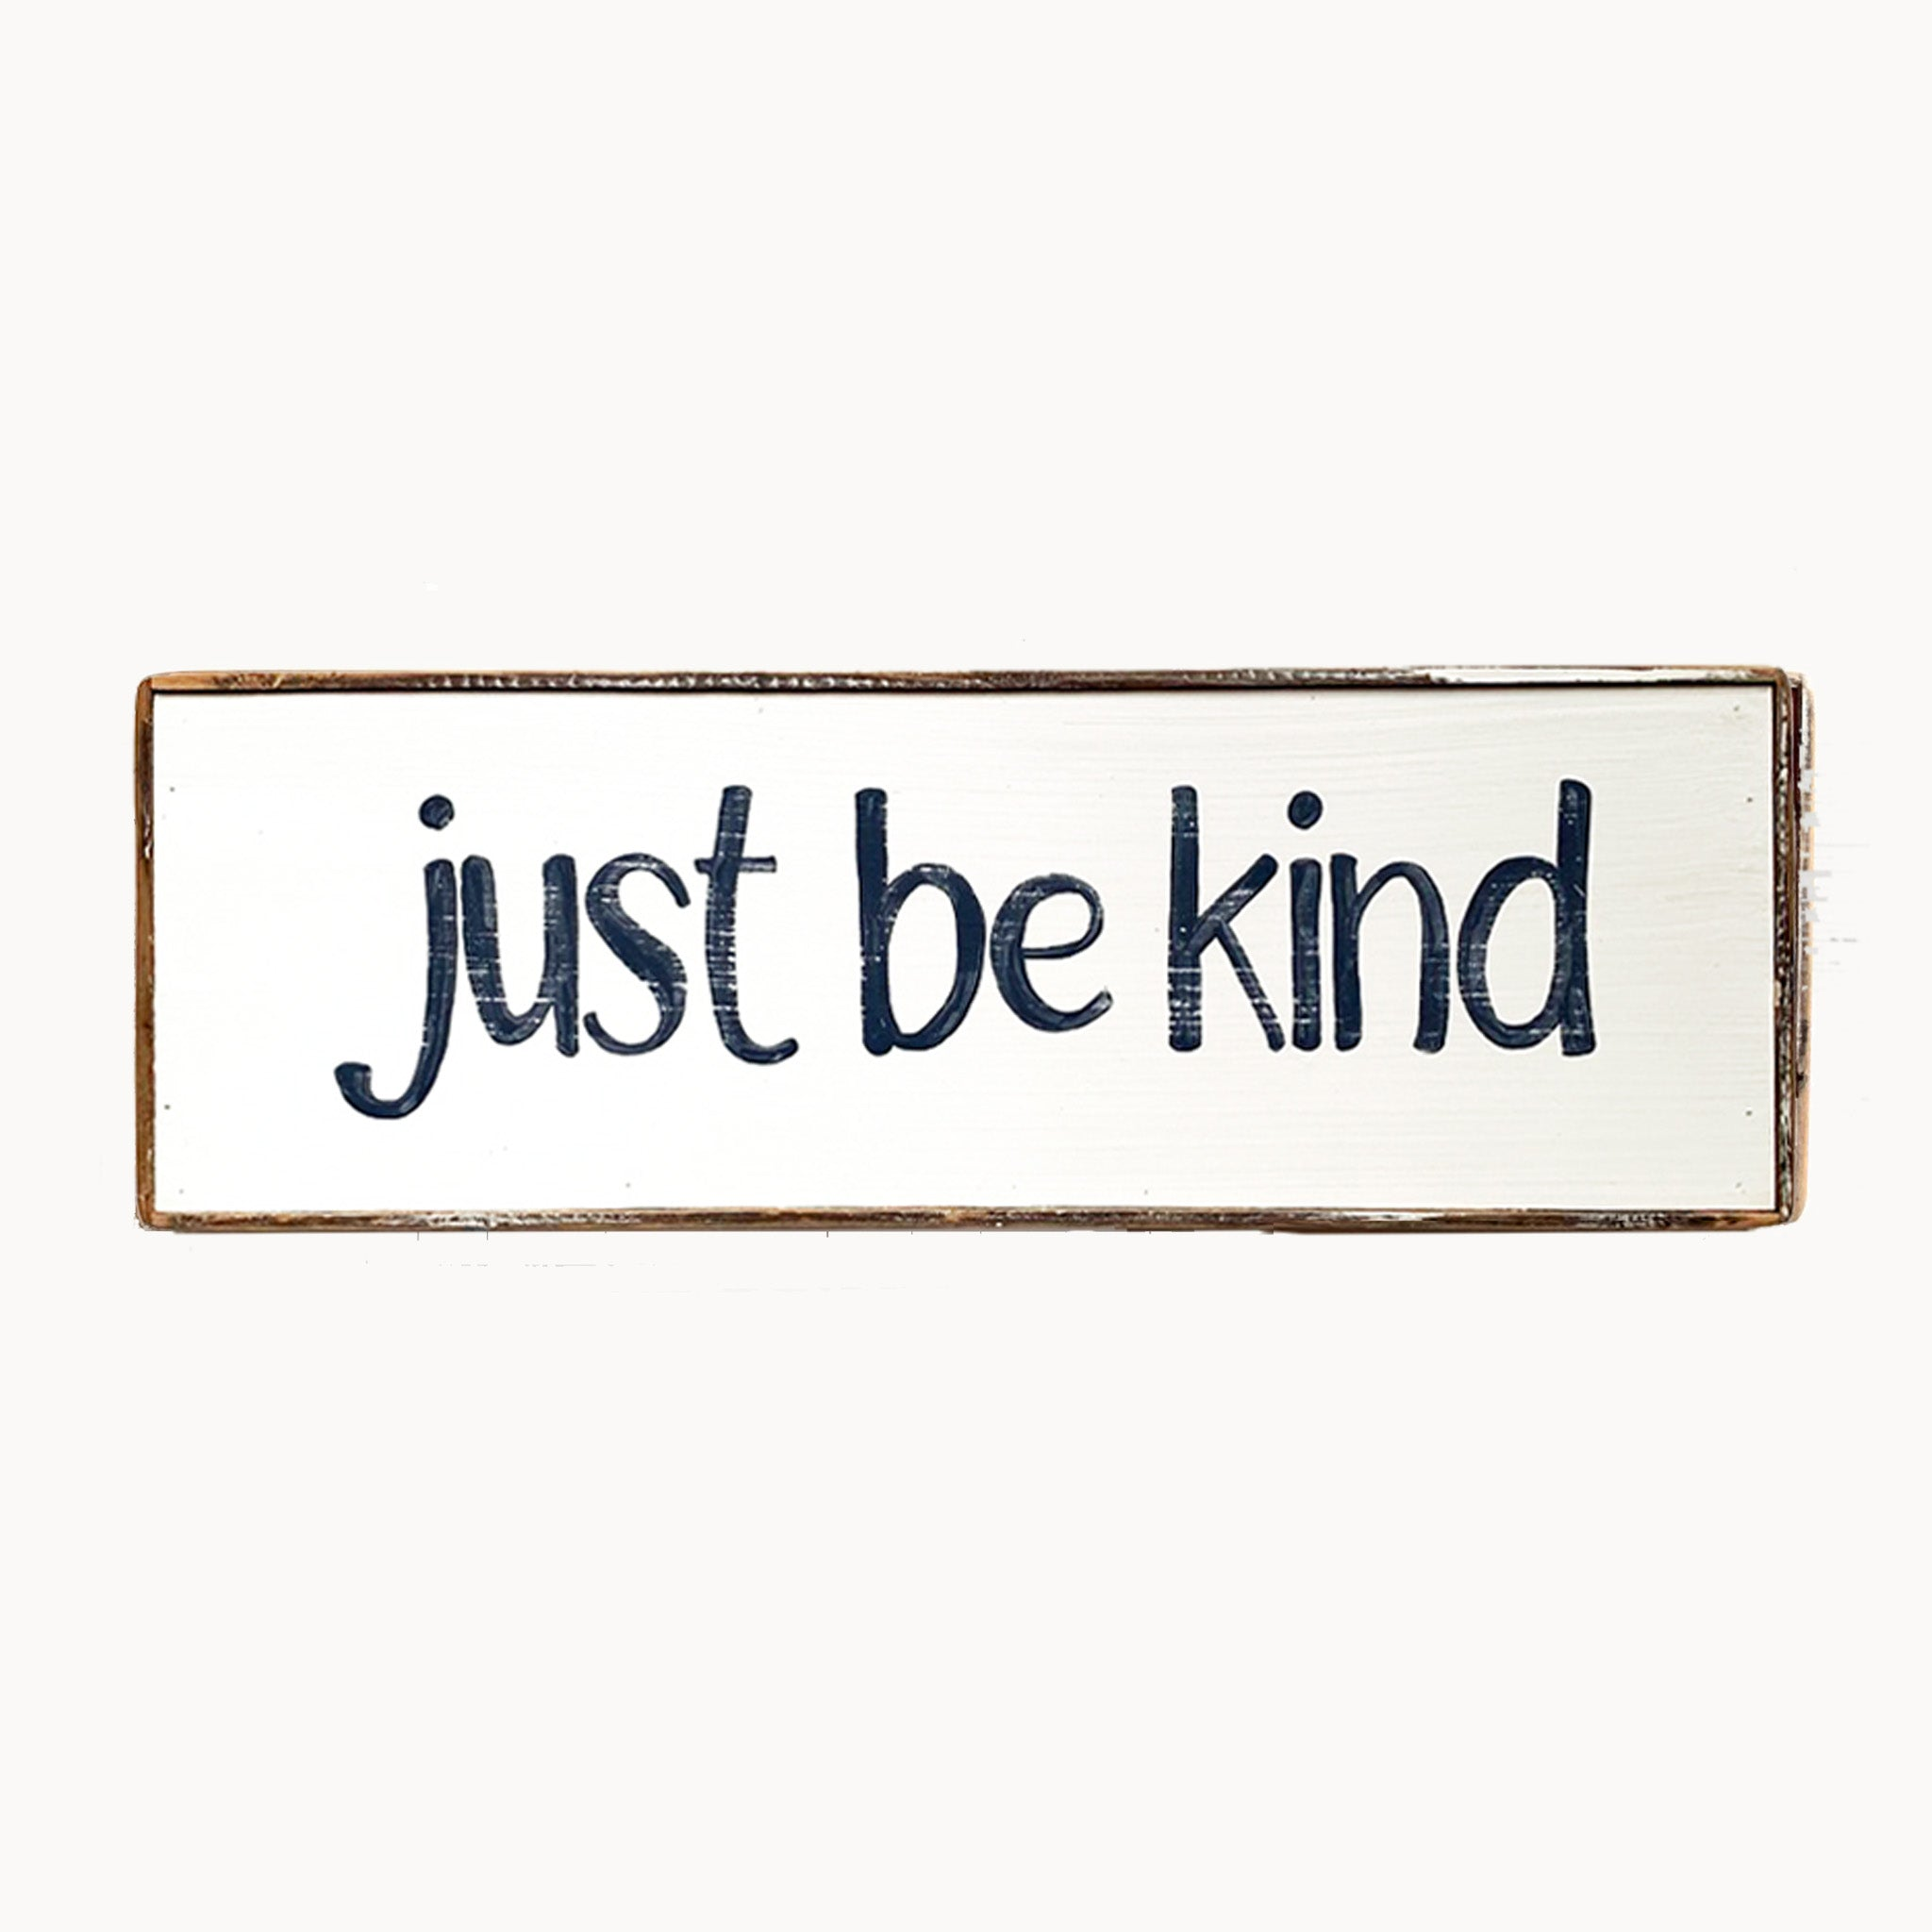 just be kind (small)